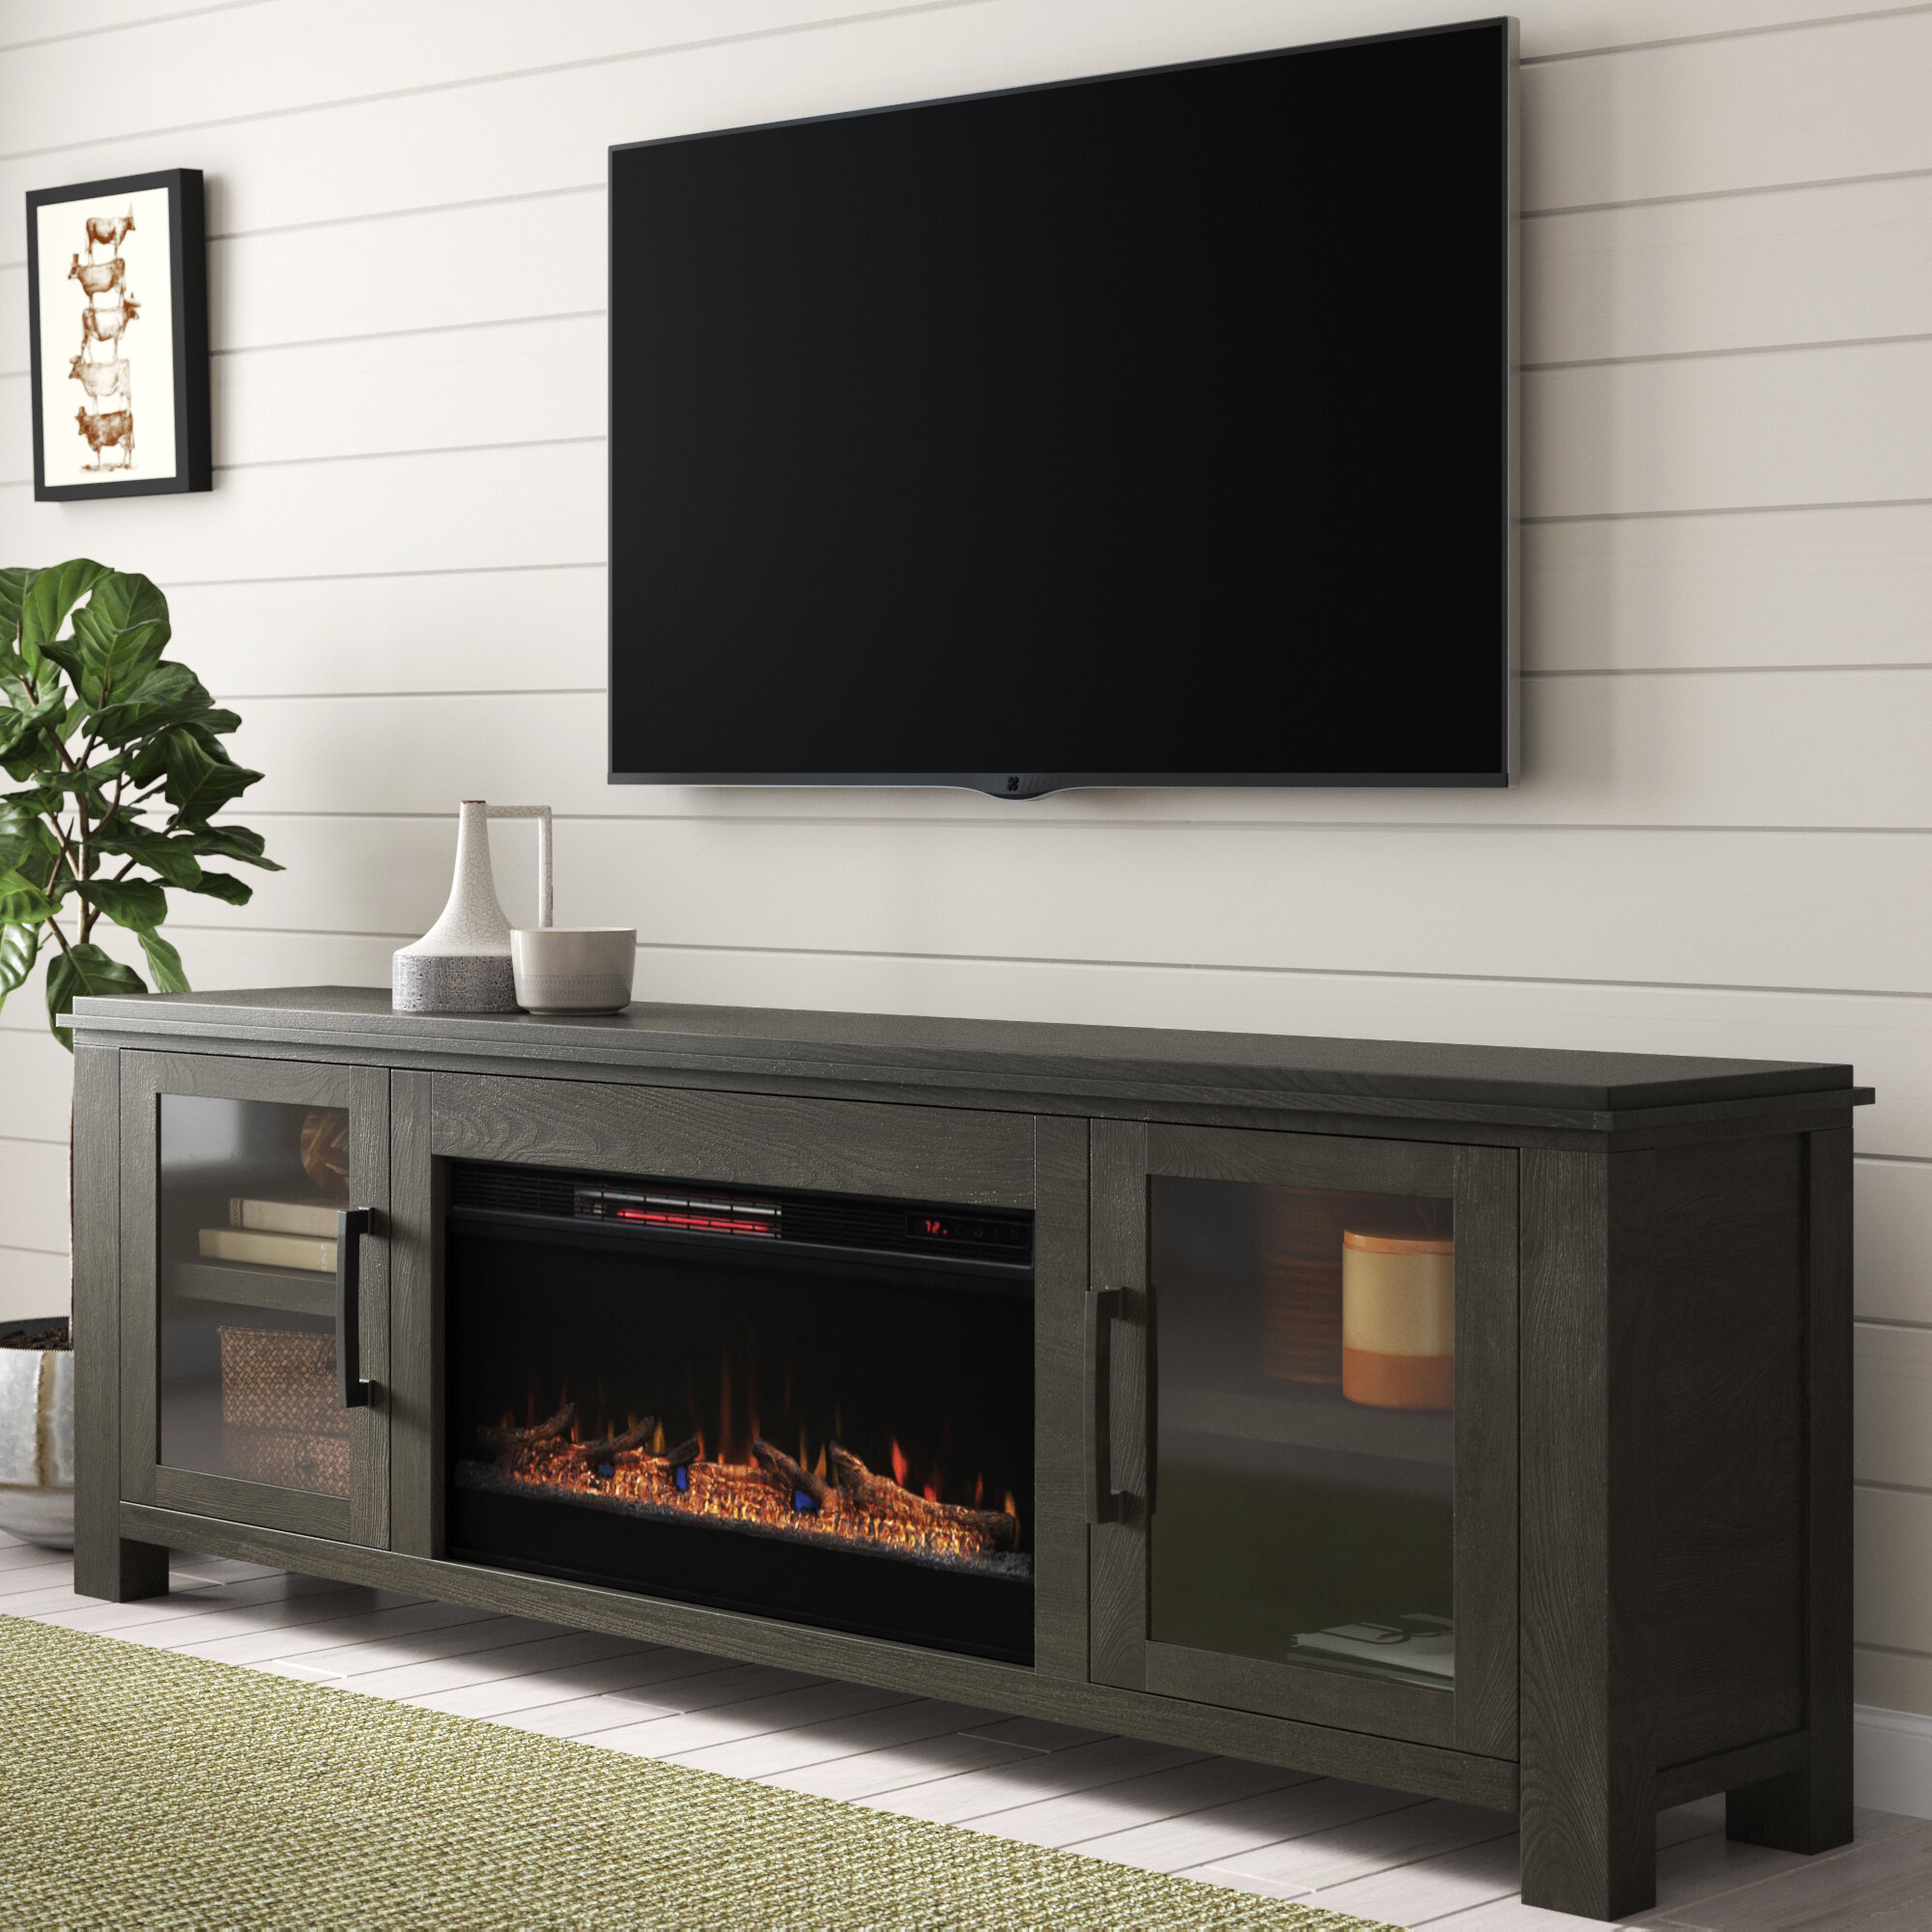 Gracie Oaks Cloyne Tv Stand For Tvs Up To 88 With Electric